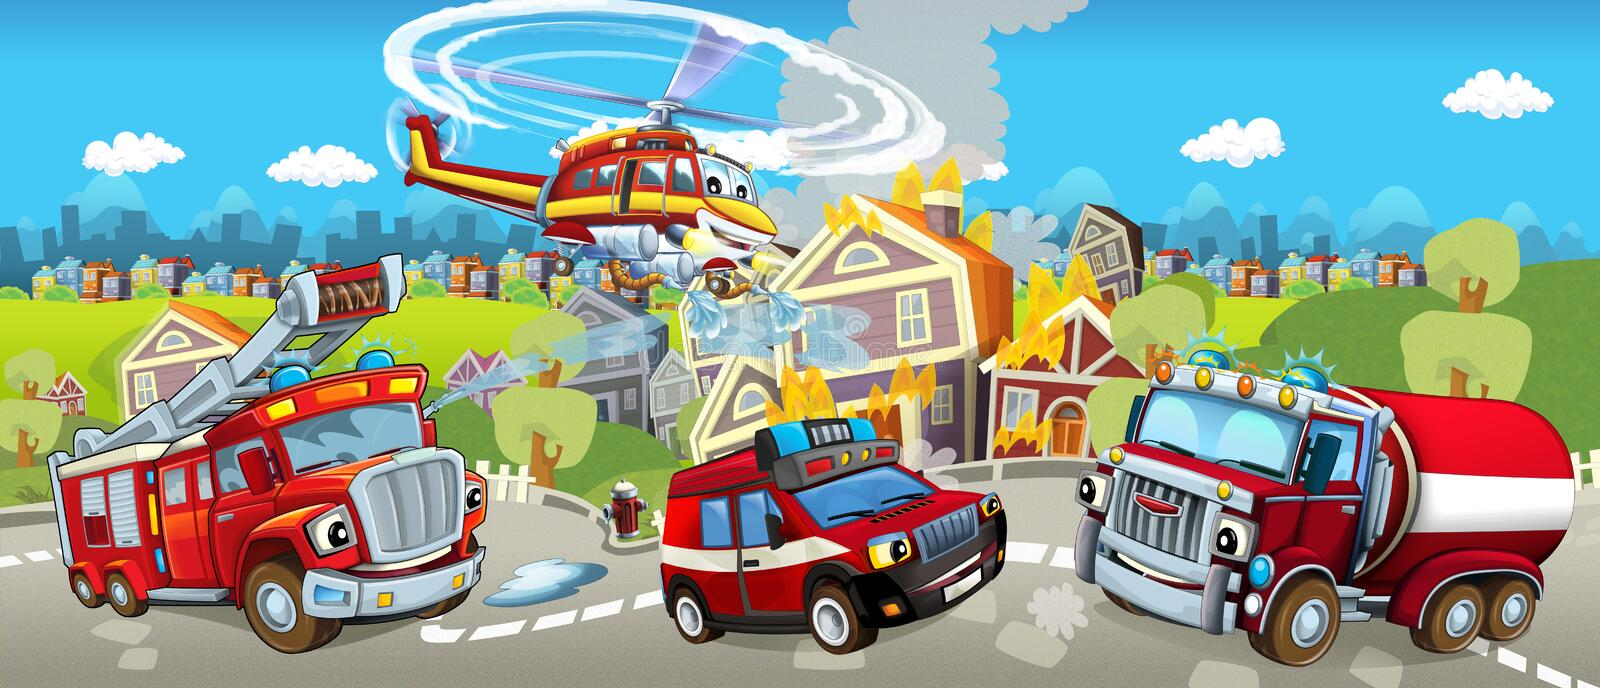 Cartoon stage with different machines for firefighting - colorful and cheerful scene. Happy and funny traditional scene for different usage vector illustration